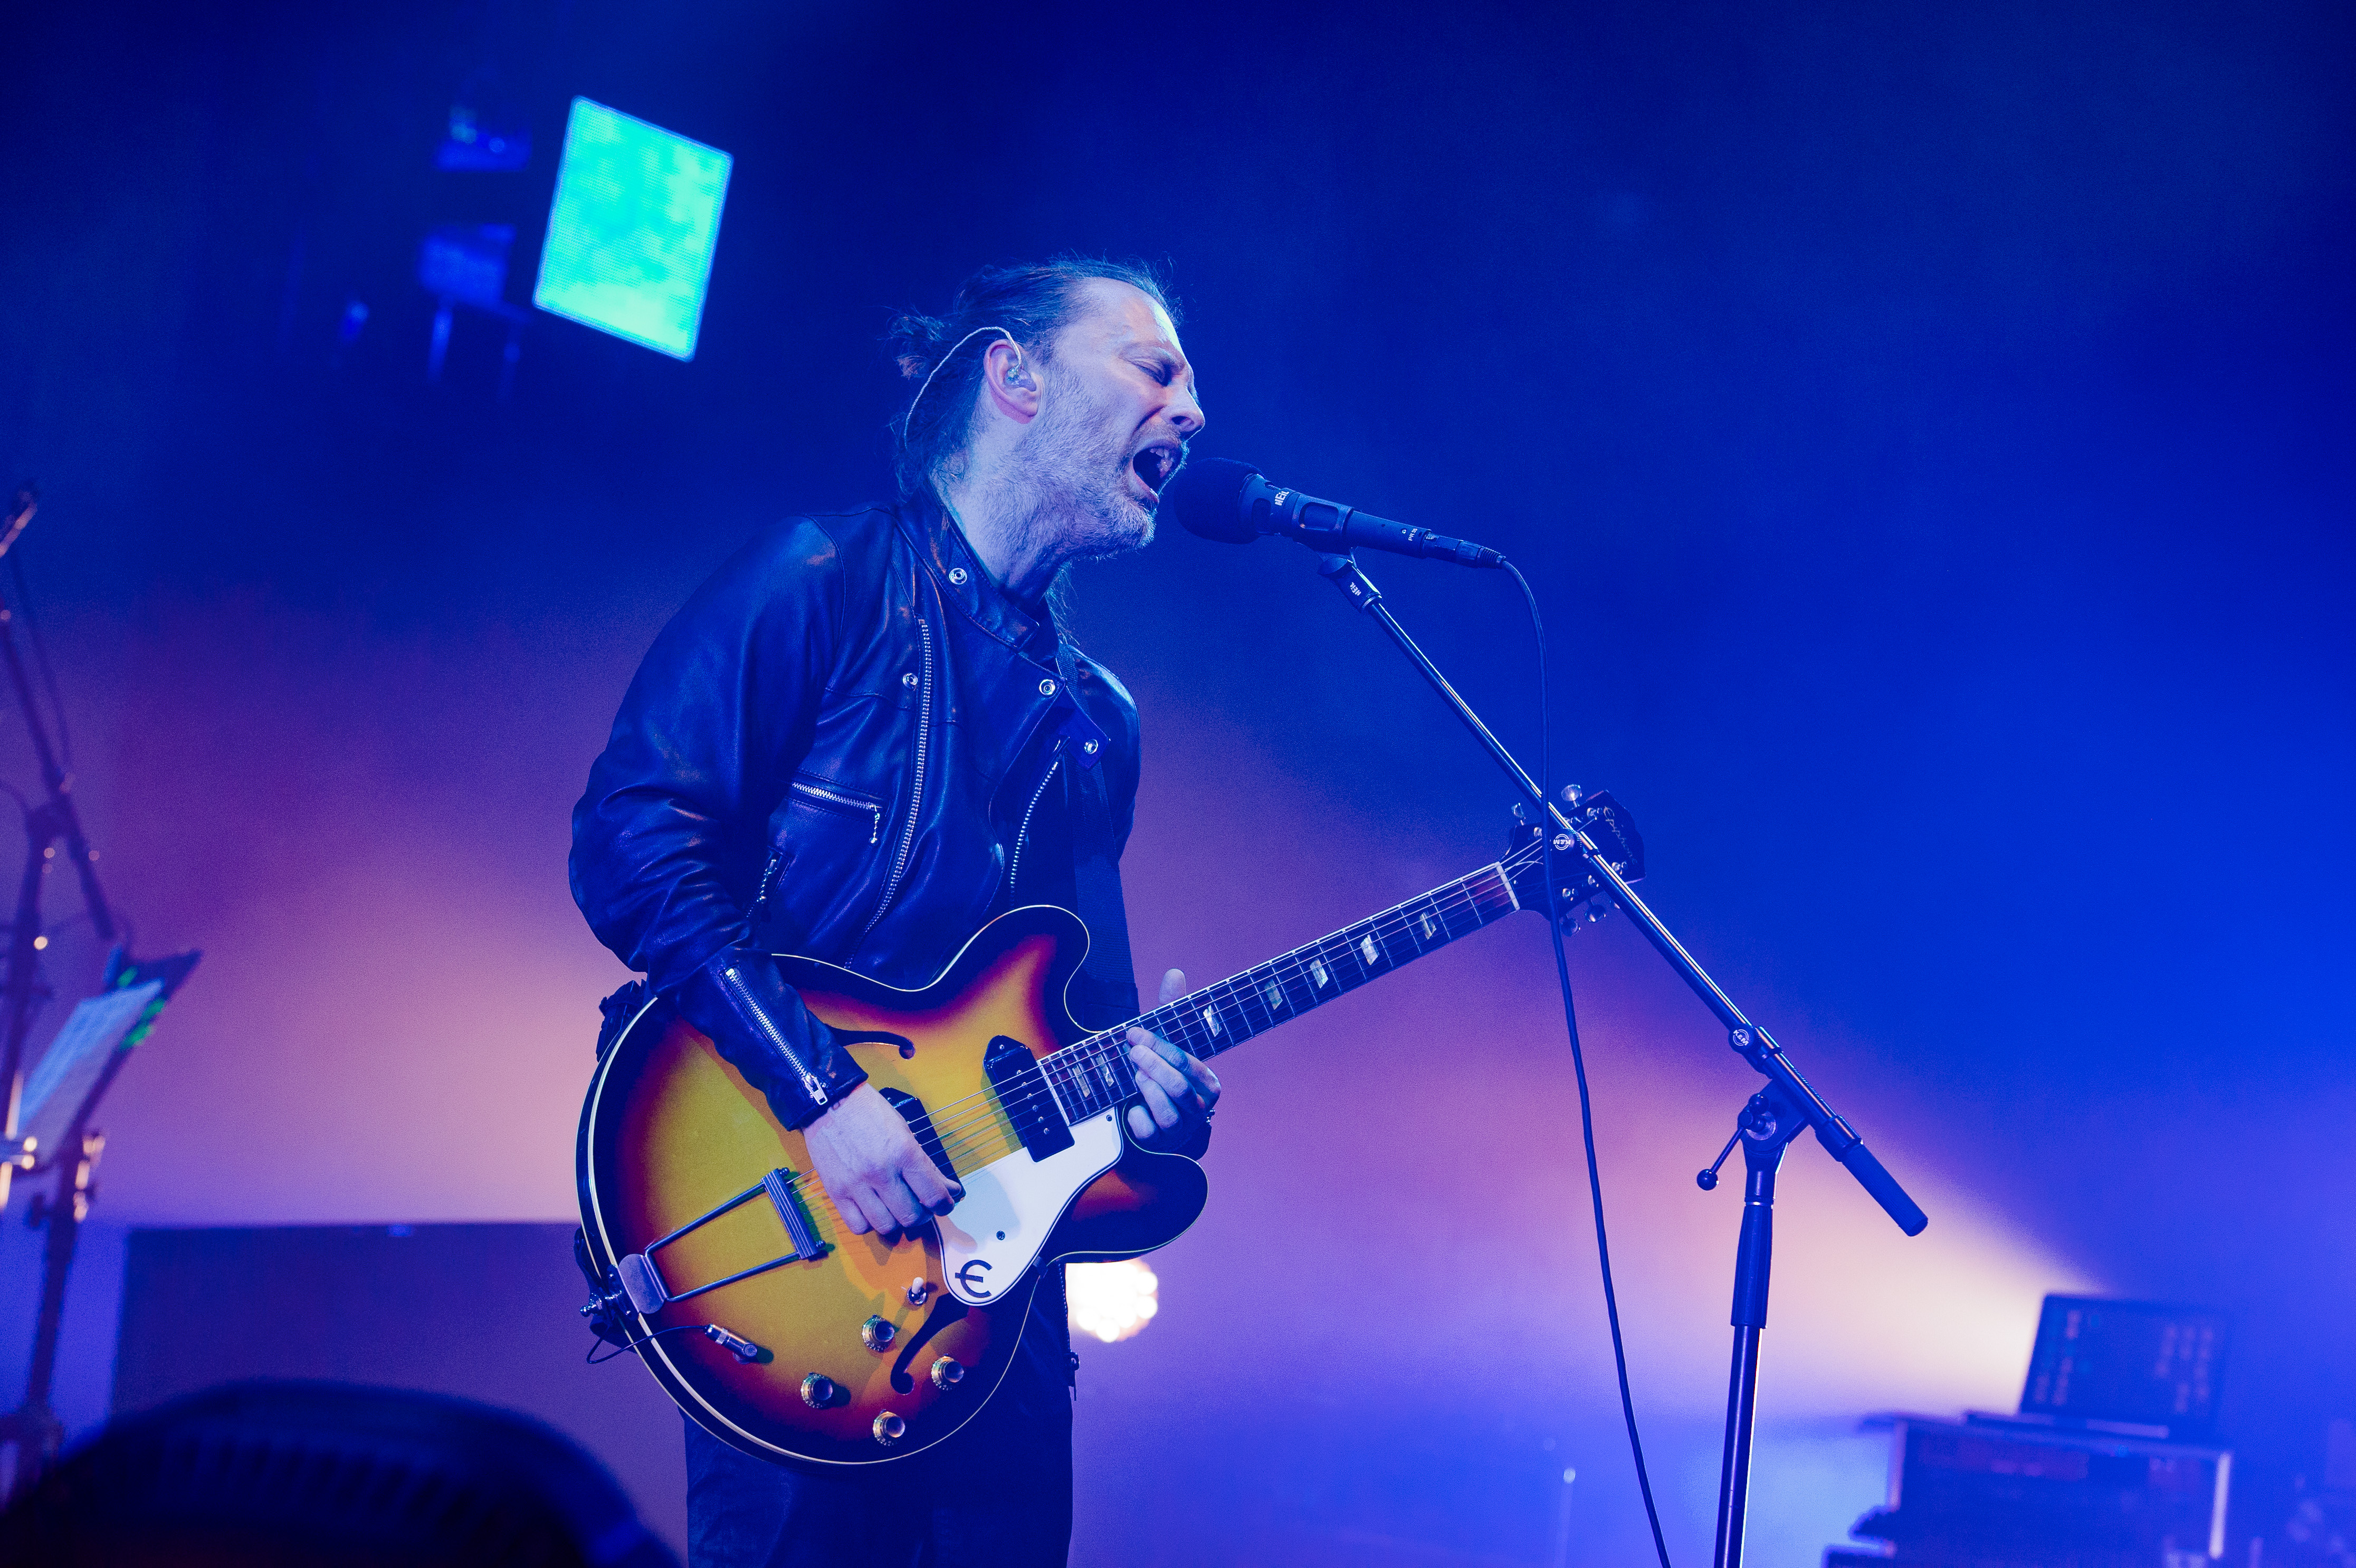 PARIS, FRANCE - MAY 23: Thom Yorke from Radiohead performs at Le Zenith on May 23, 2016 in Paris, France. (Photo by David Wolff - Patrick/Redferns)